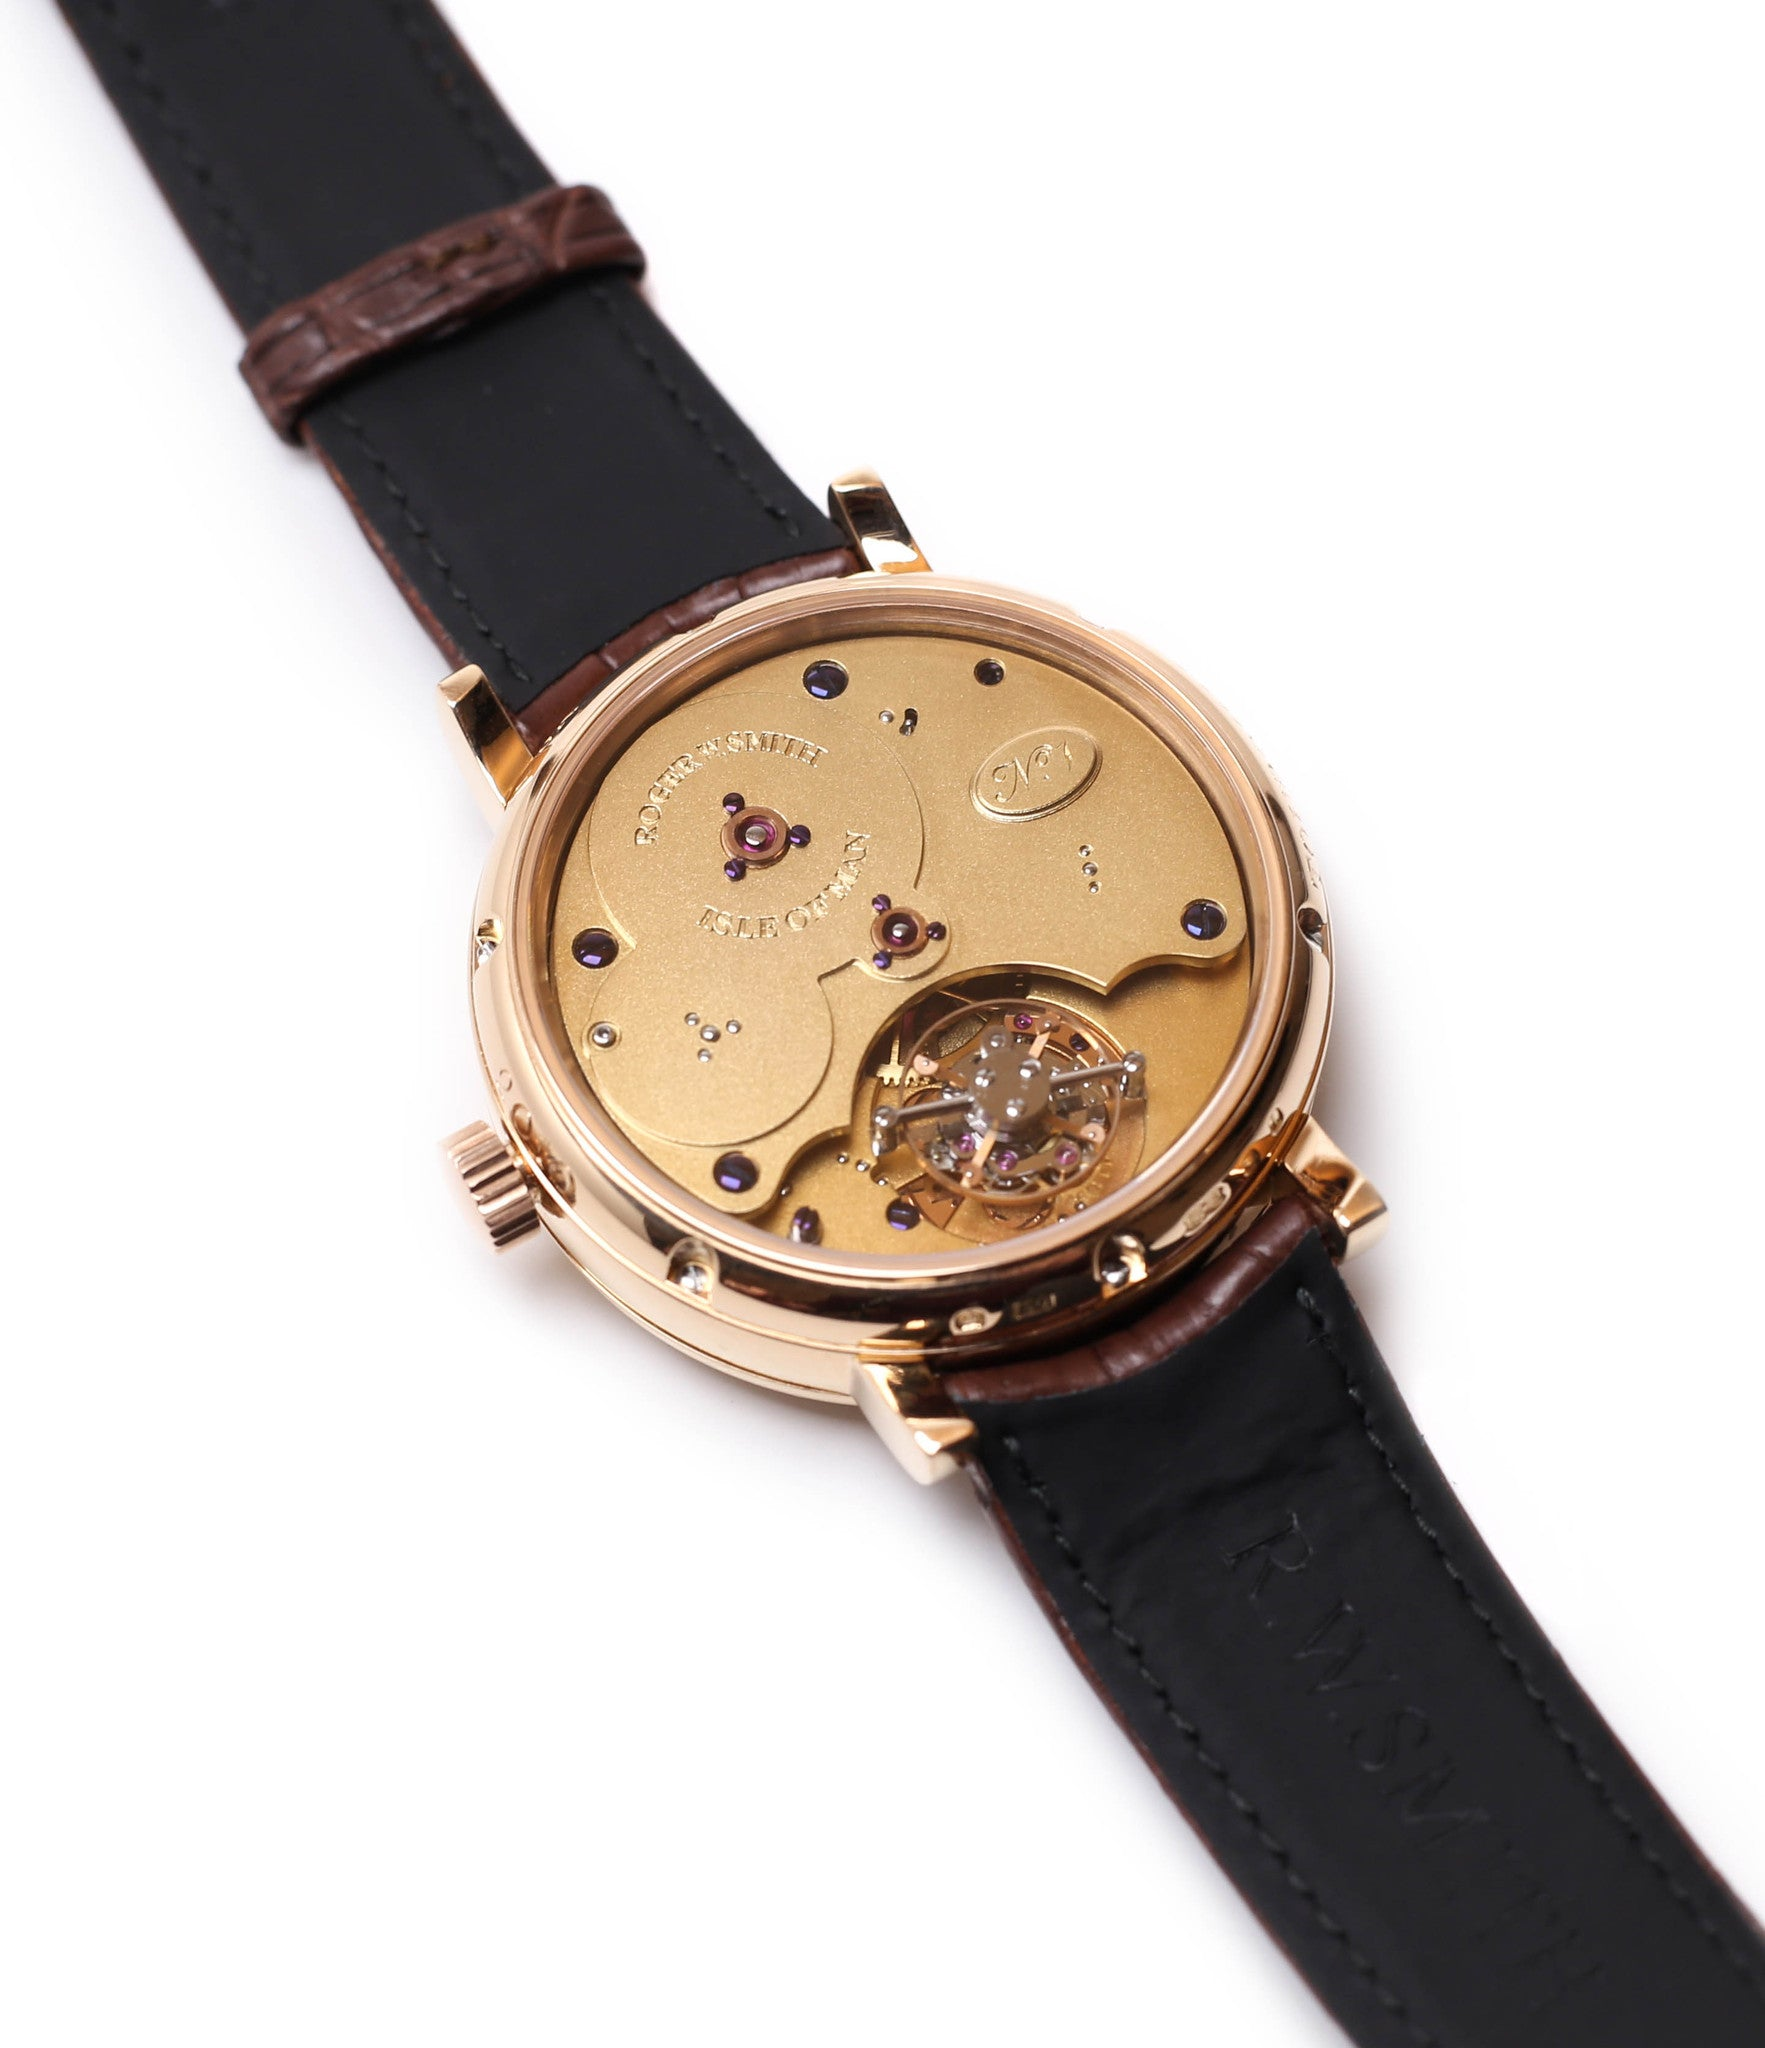 movement buy Roger Smith rare watch Grande Panorama date flying tourbillon No. 1 red gold dress watch at A Collected Man approved reseller of independent watchmakers